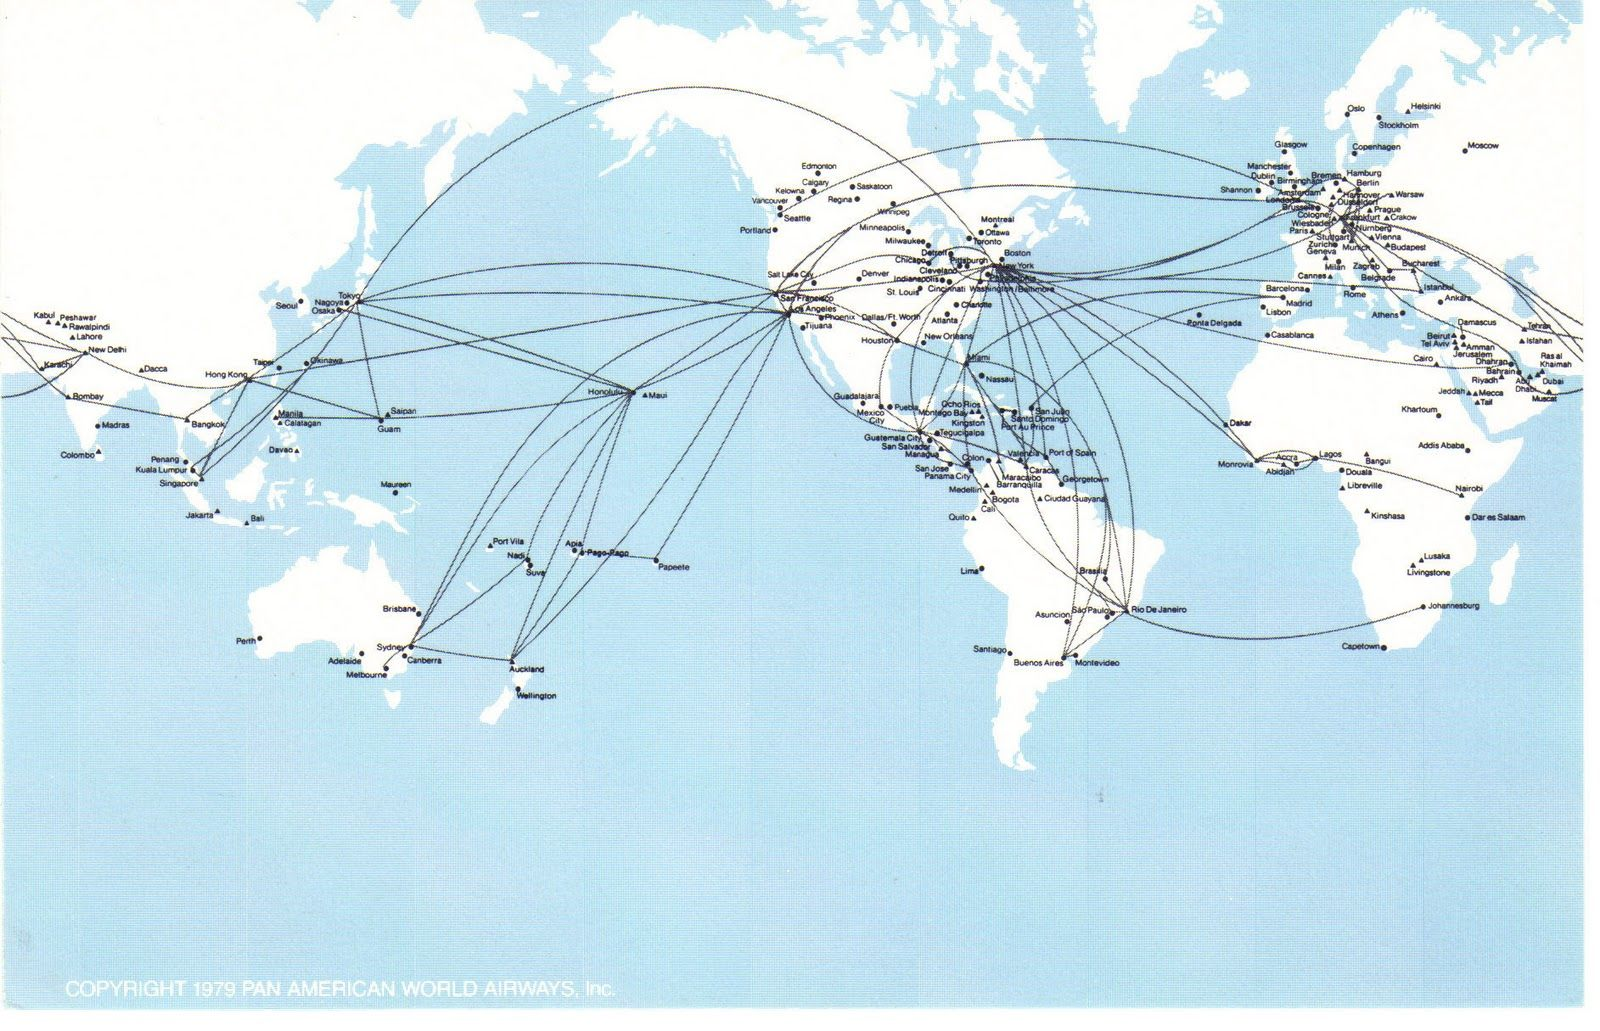 Panampostcardmapjpg Route Maps Pinterest - Us airways europe route map